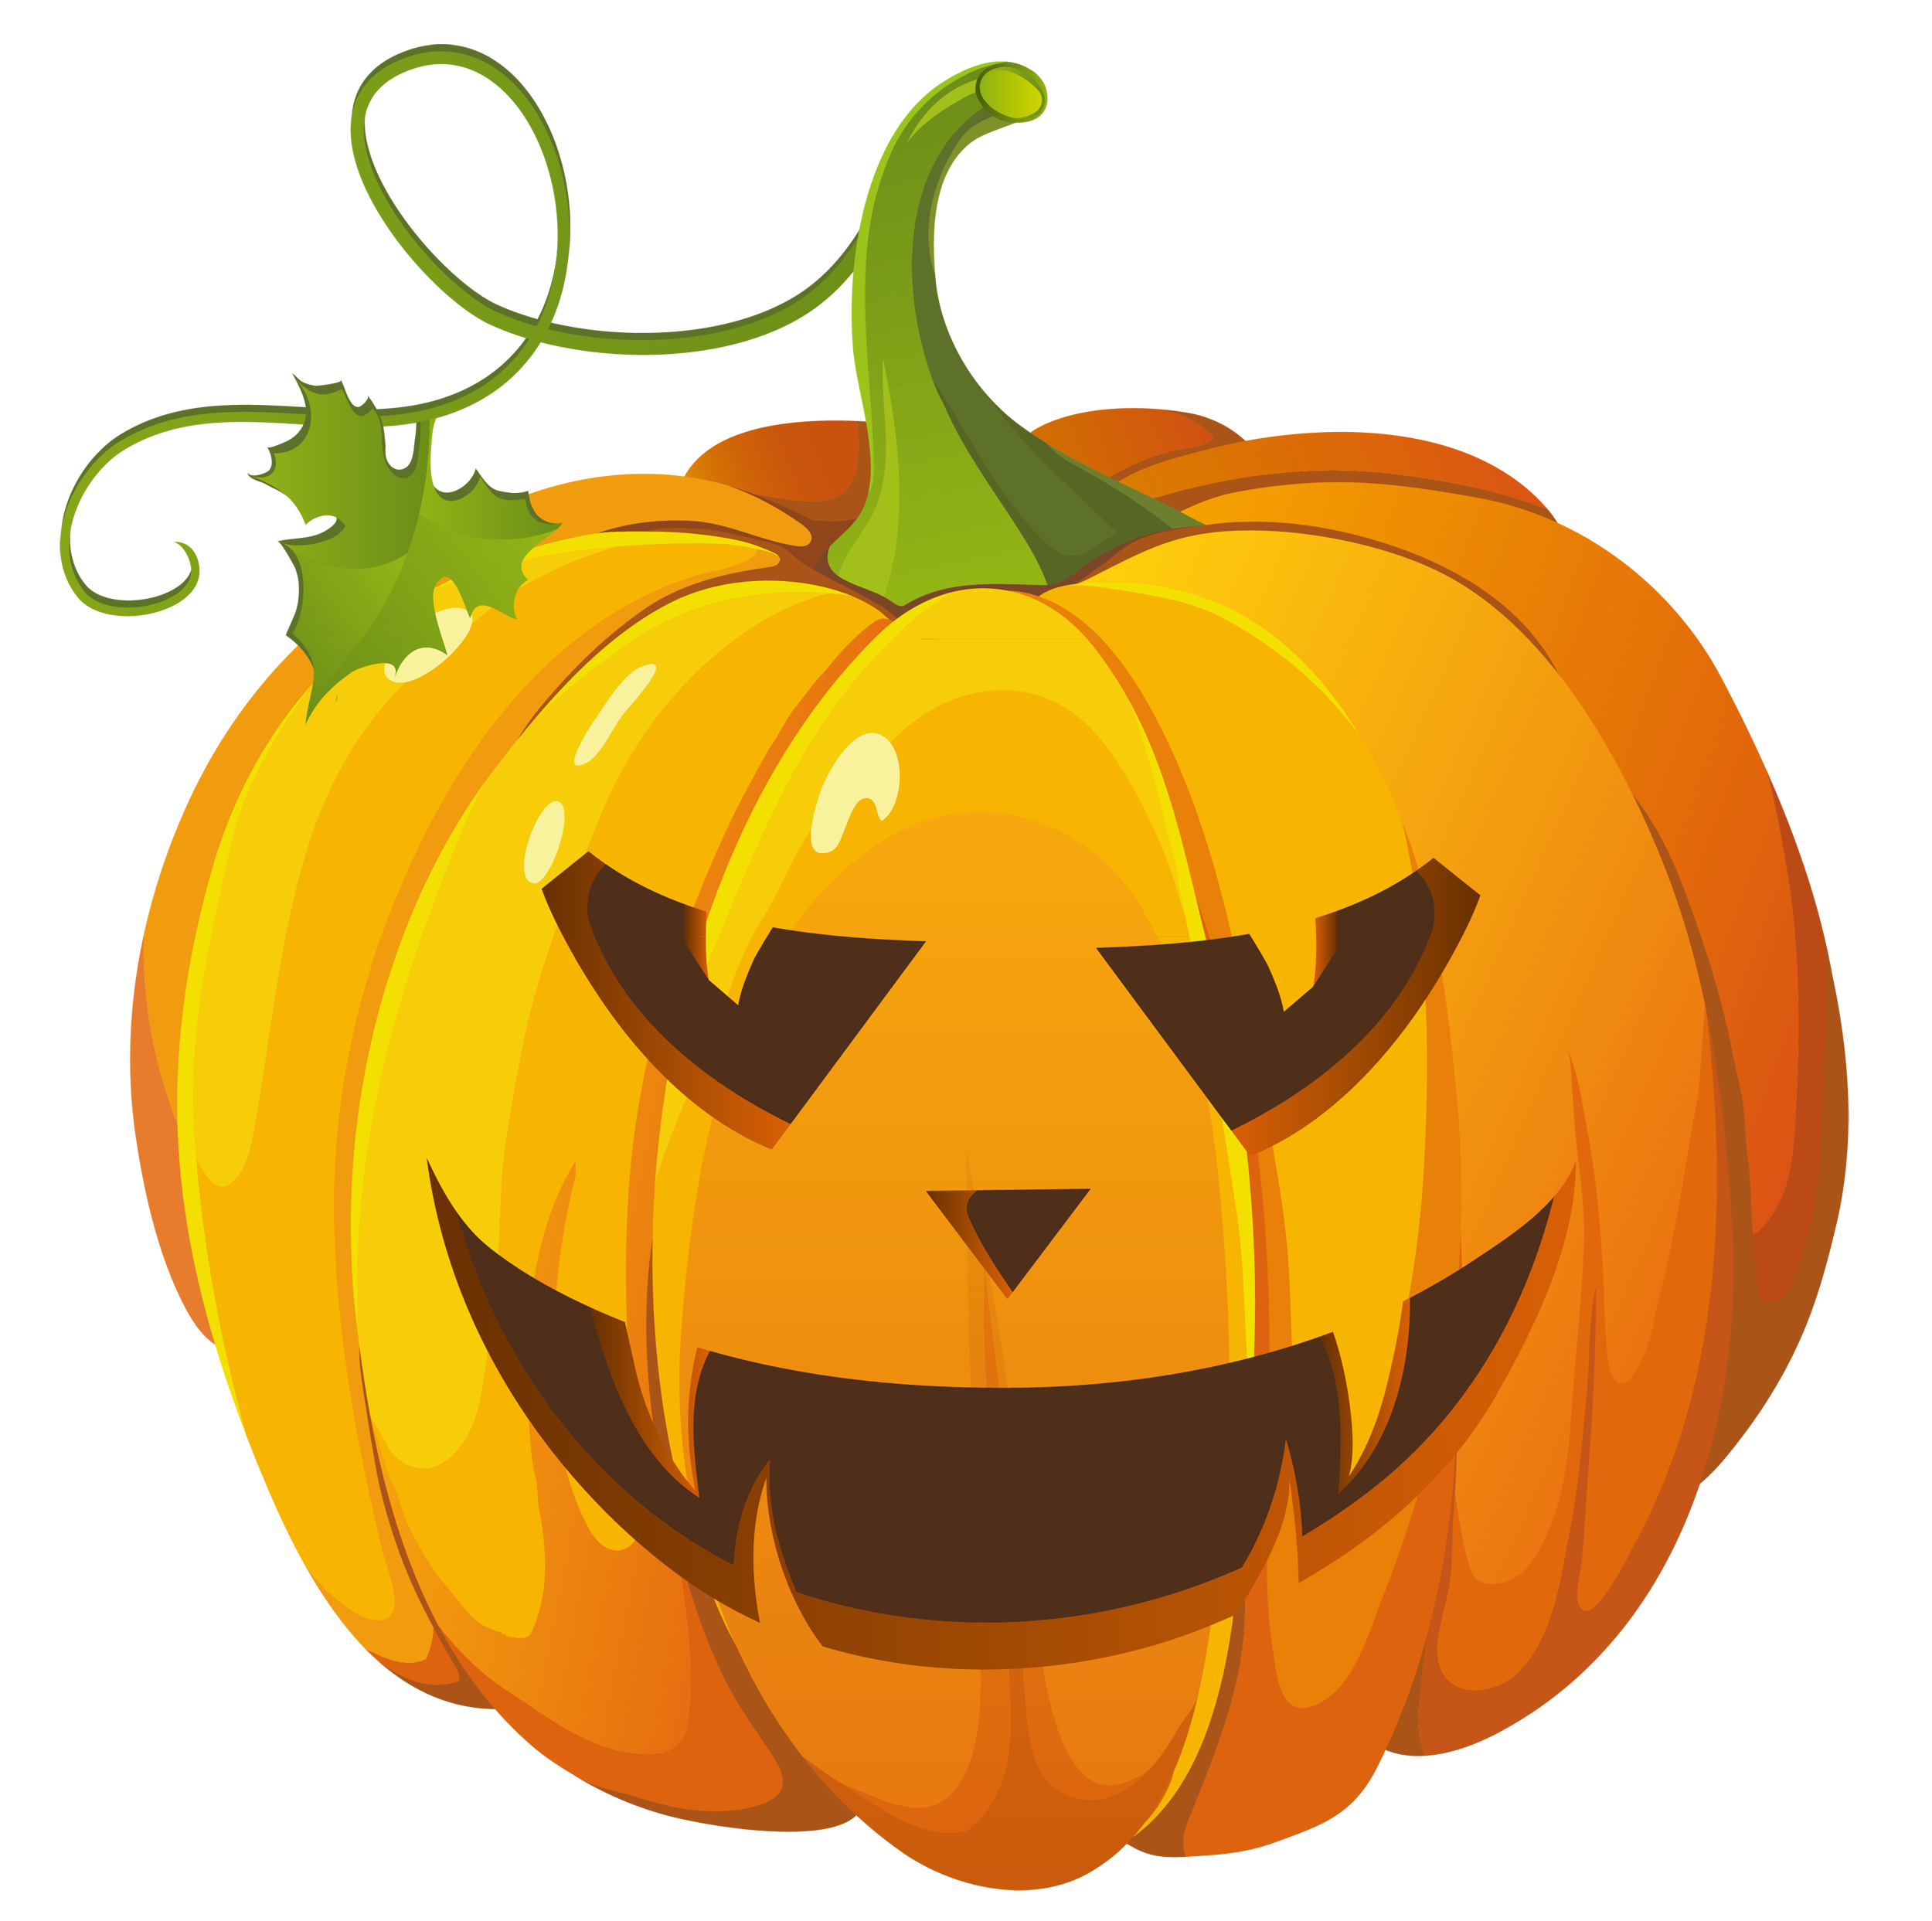 Cute Pumpkin Patch Clipart Large Transpa-Cute Pumpkin Patch Clipart Large Transparent Halloween Pumpkin Clipart-5